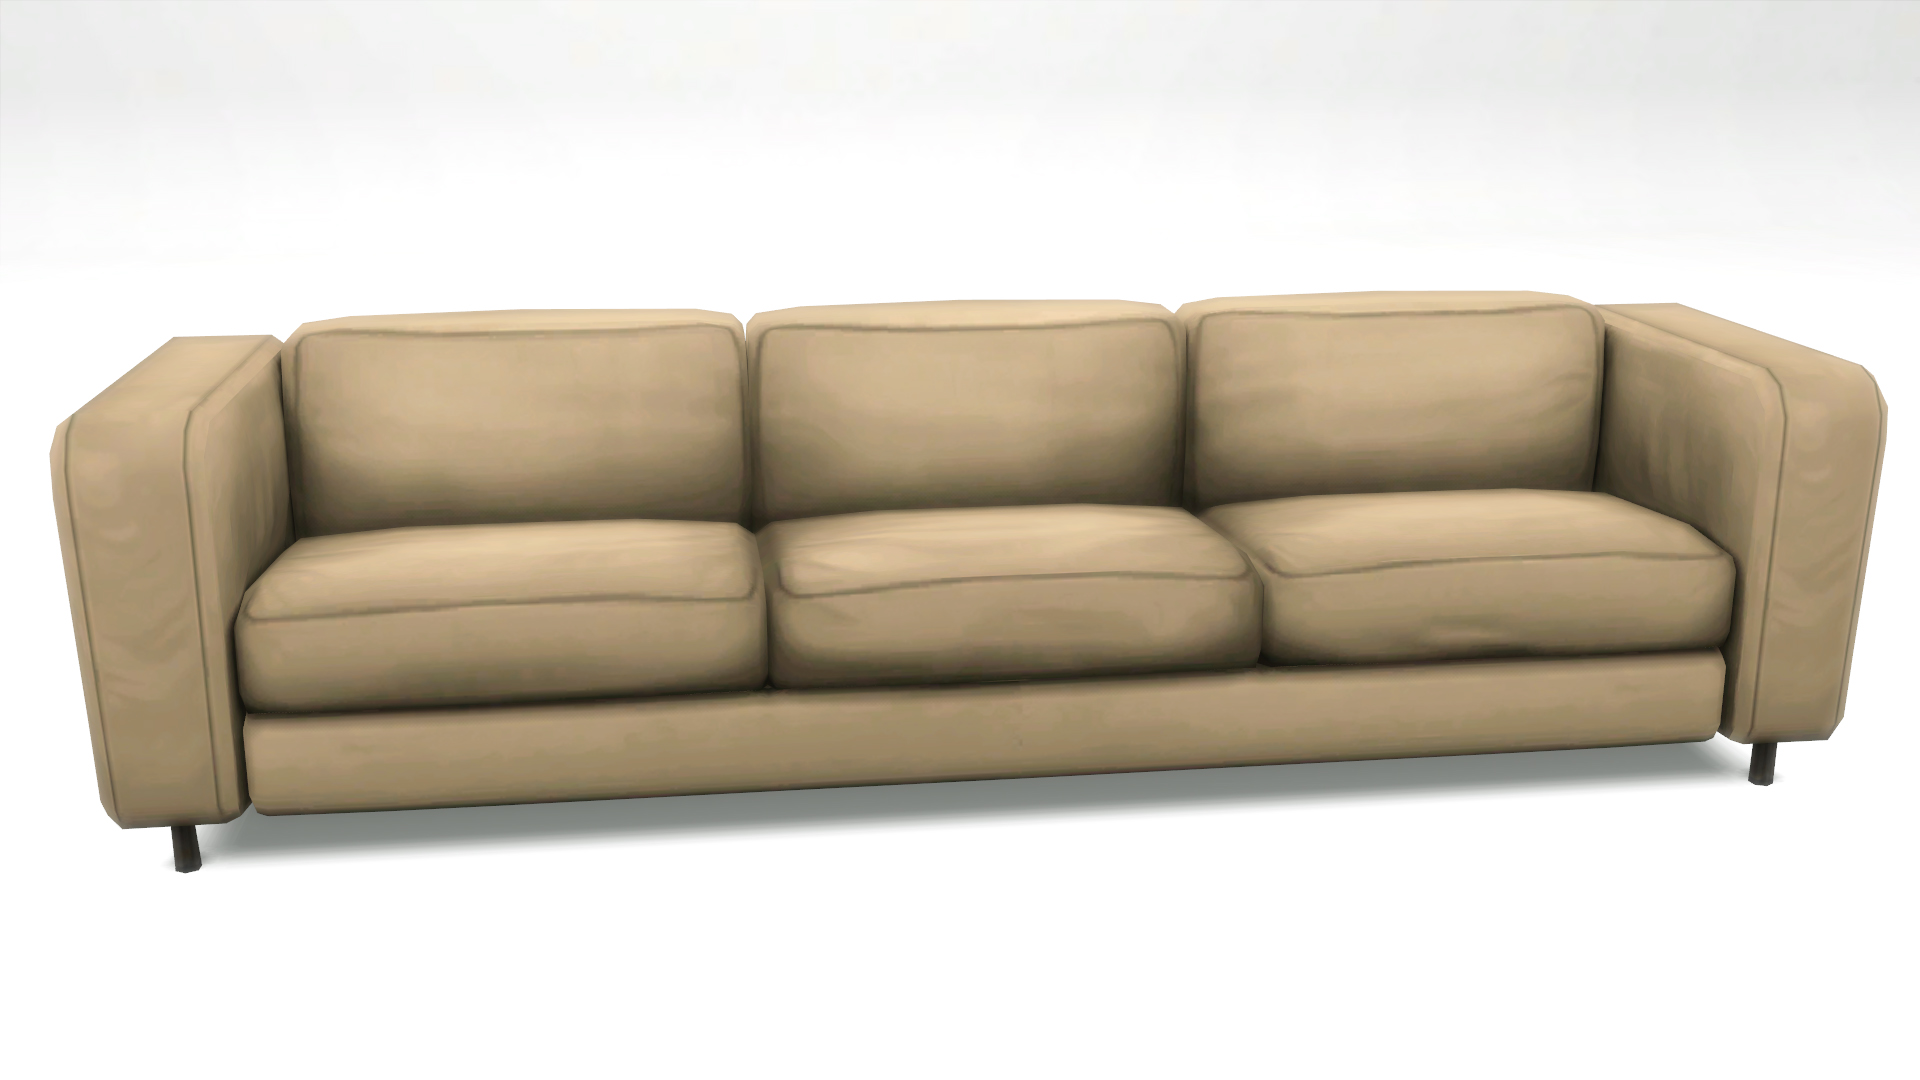 Mod The Sims Catharti Couch Sims 3 Conversion